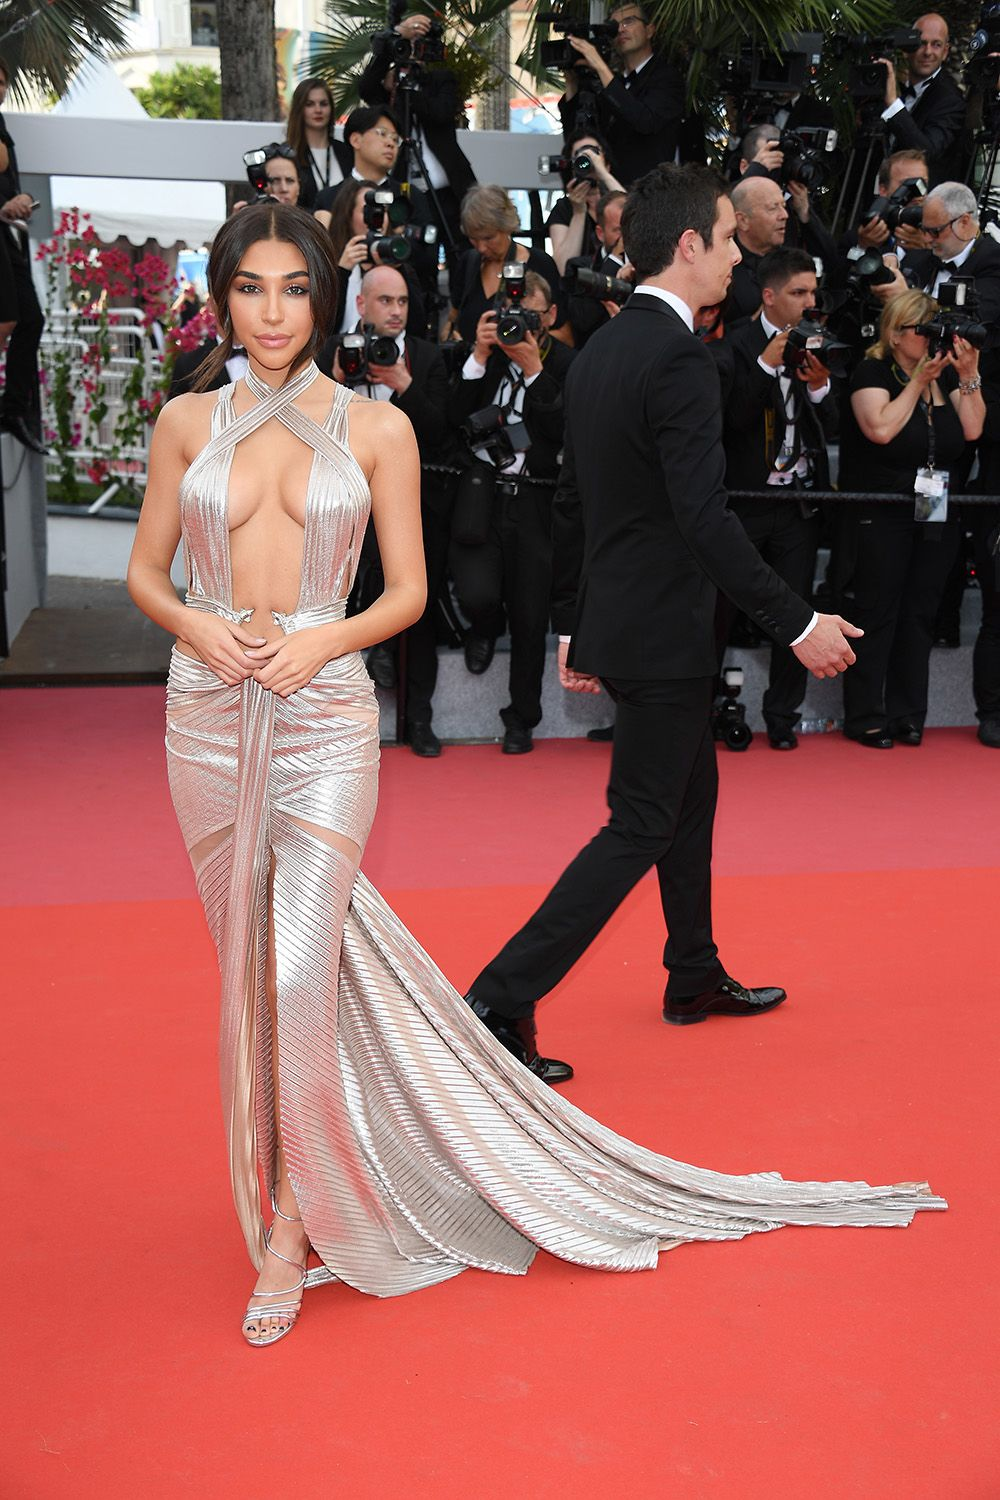 images The Most Naked Dresses on The Cannes Red Carpet